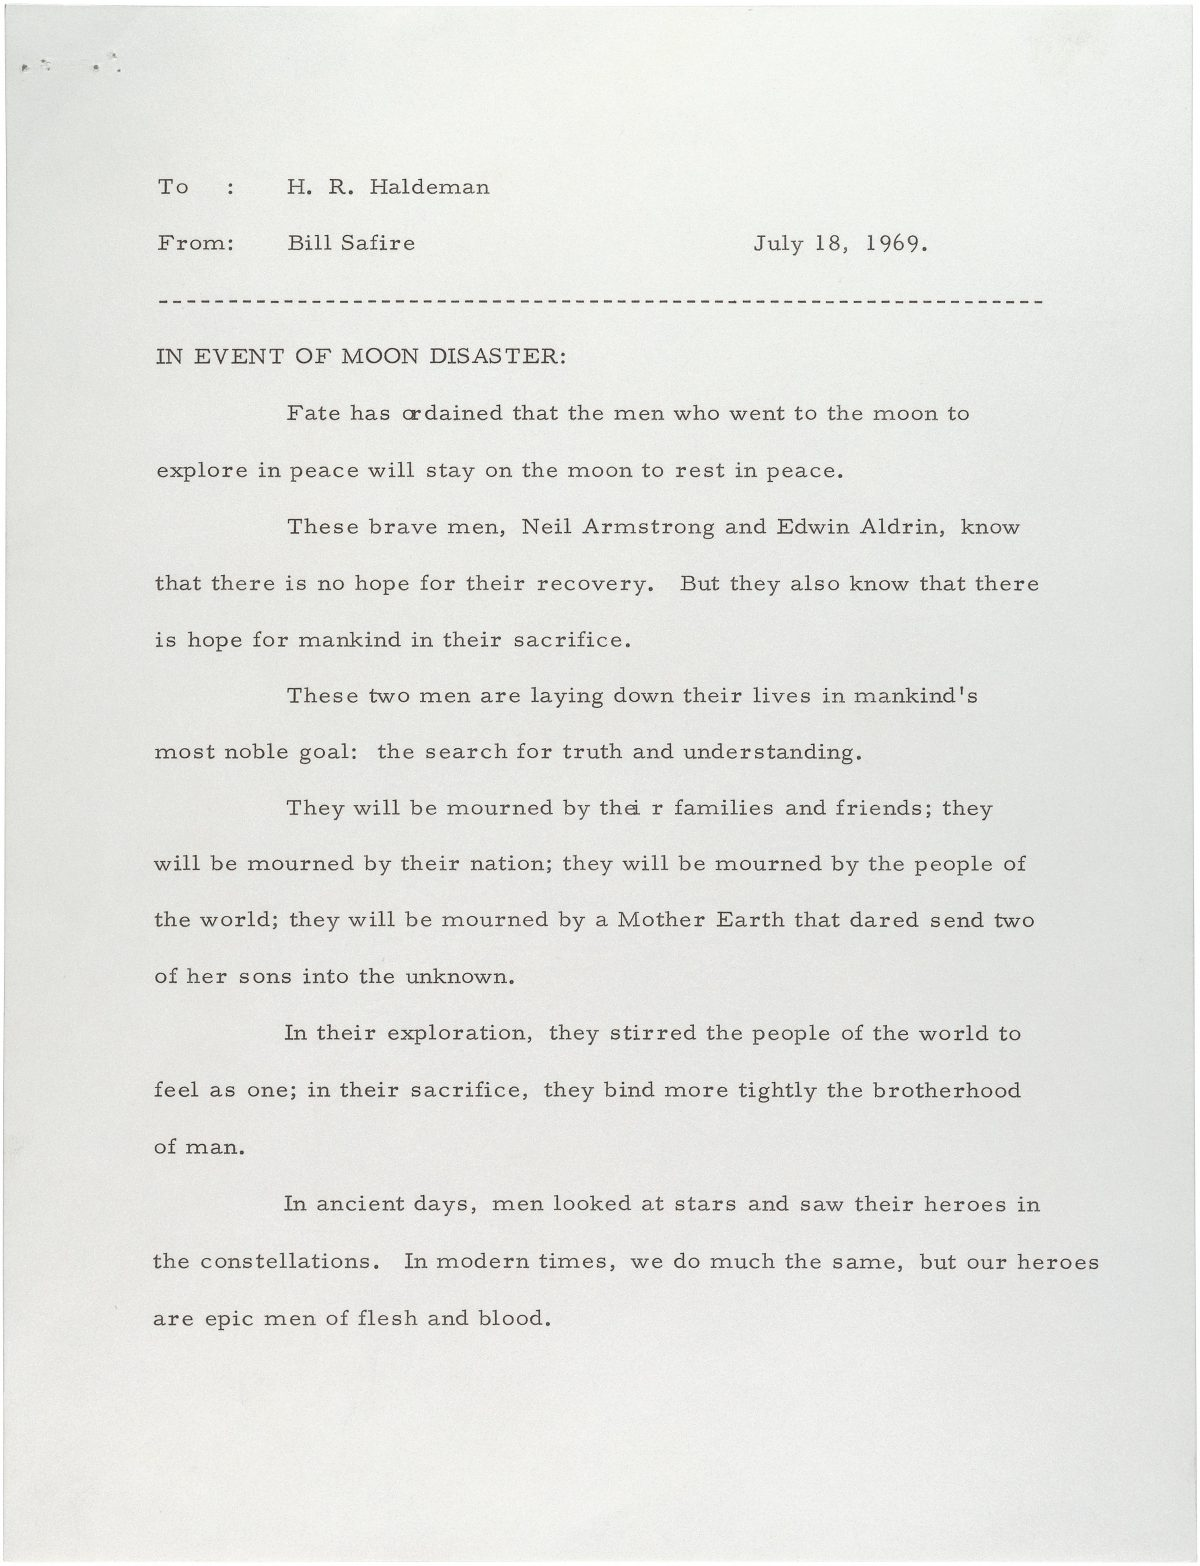 Statement for President Nixon to read in case the astronauts were stranded on the Moon, July 18, 1969.